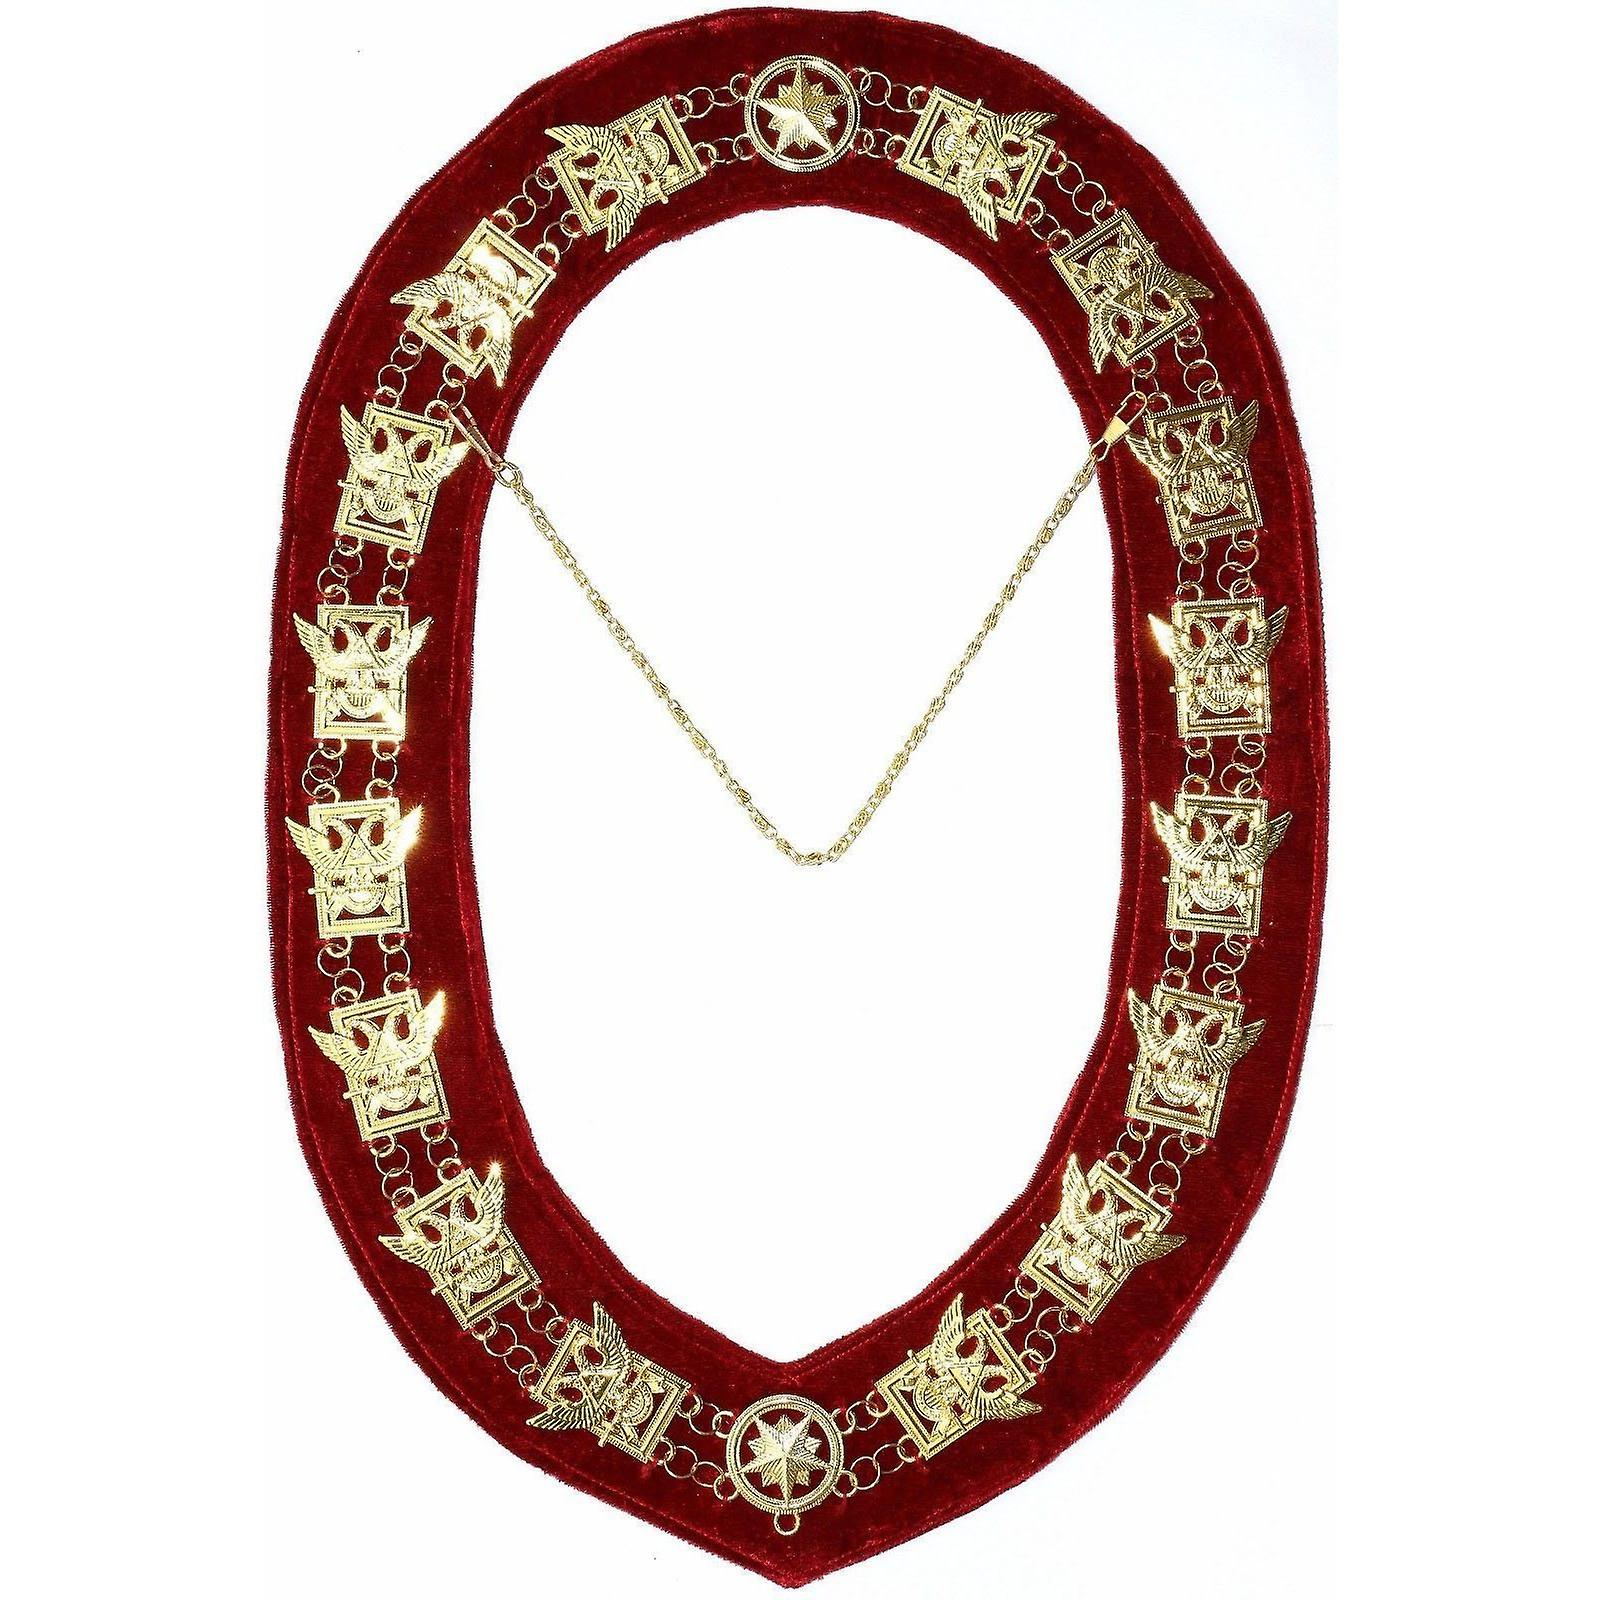 32nd Degree - Scottish Rite Wings UP Chain Collar - Gold/Silver on Red + Free Case